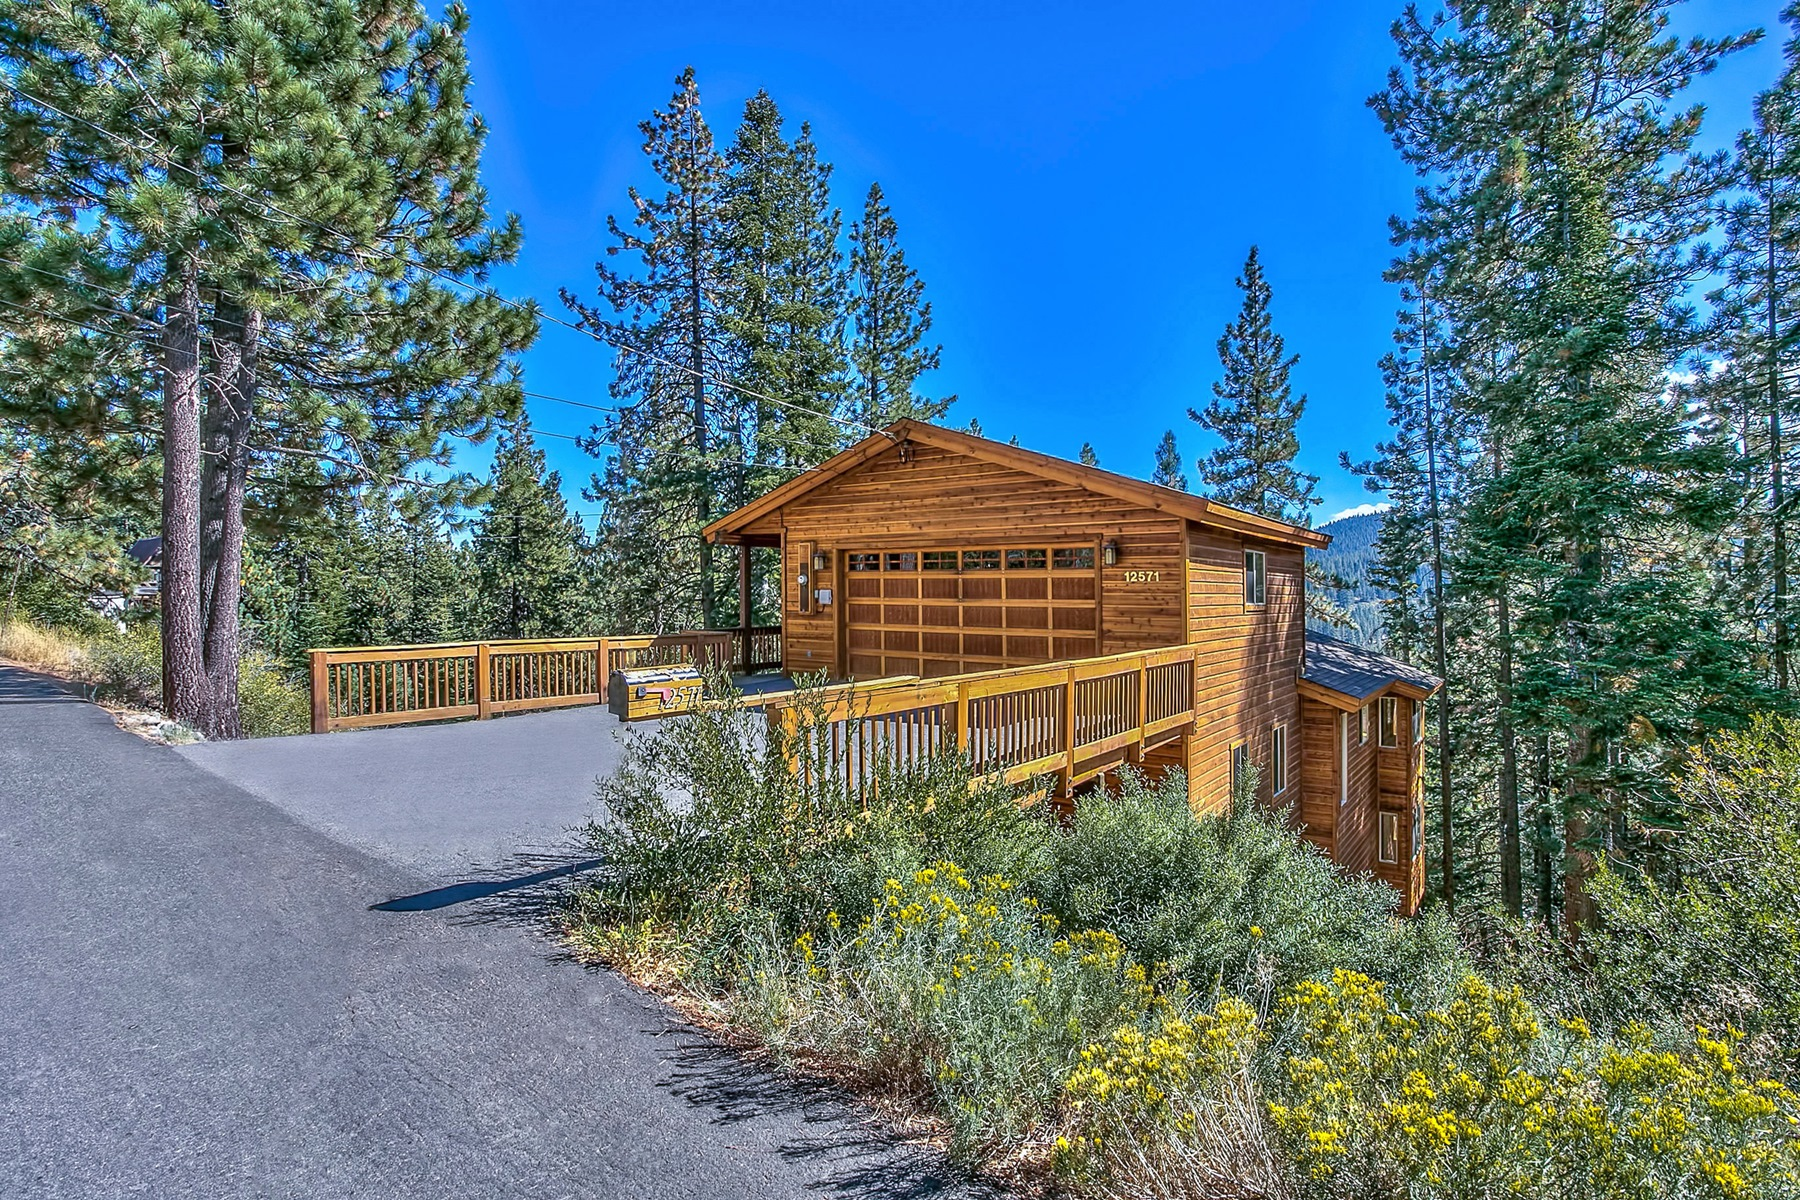 Additional photo for property listing at 12571 E Sierra Drive  Truckee, California 96161 United States